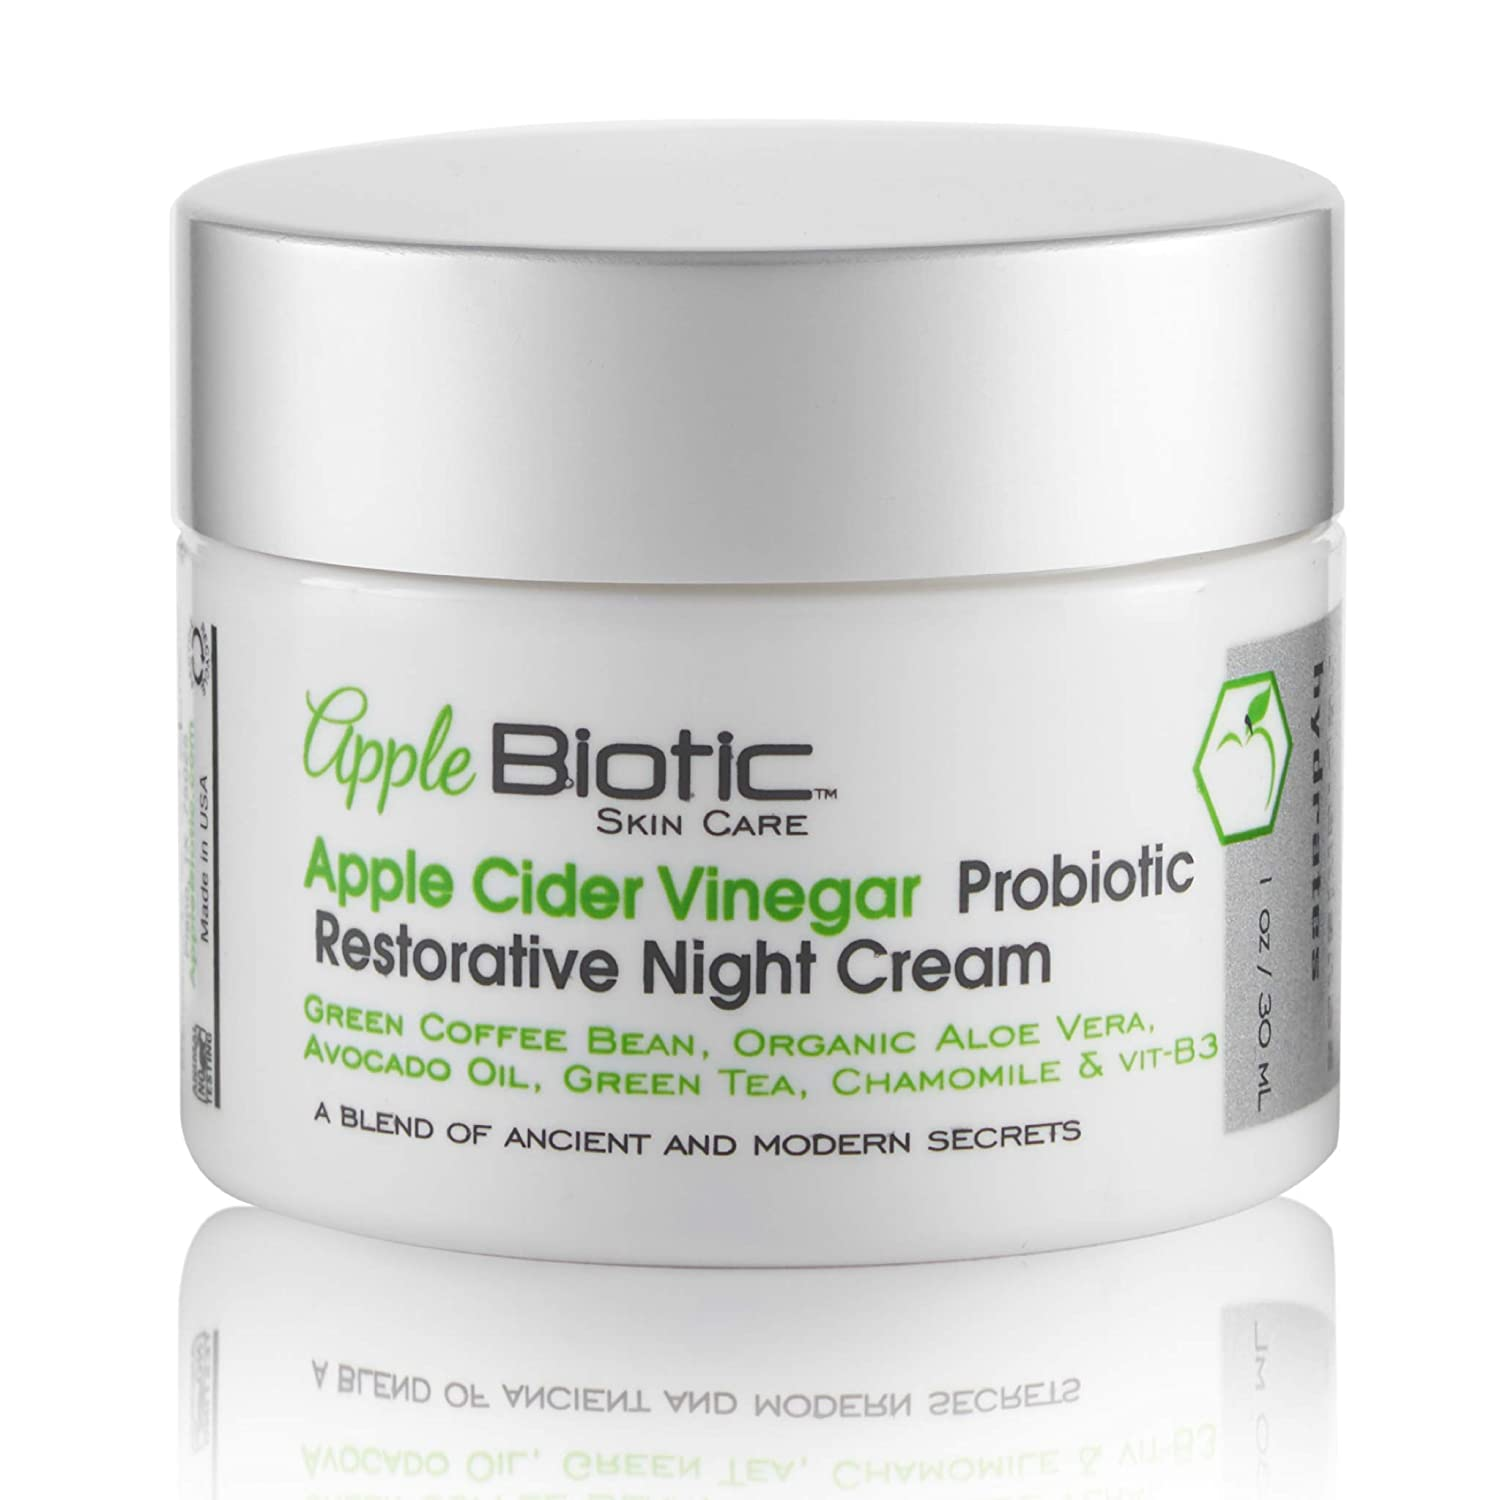 Apple Cider Vinegar Probiotic Restorative Night Cream with African Green Coffee Extract, Vitamin B3, Green Tea and Chamomile Extract to restore skin overnight.